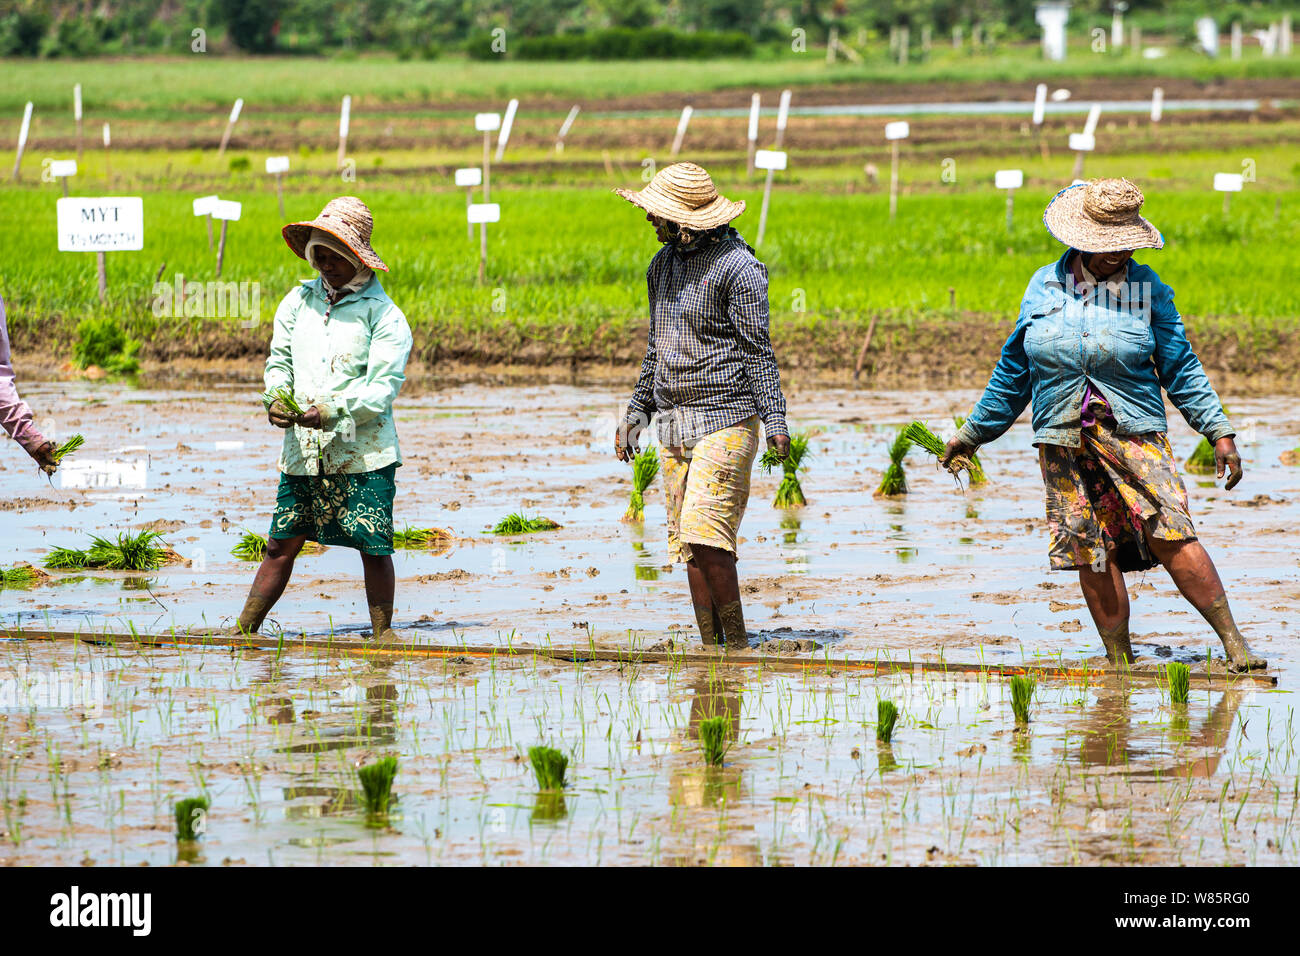 Rice field farmers working in the mud Stock Photo